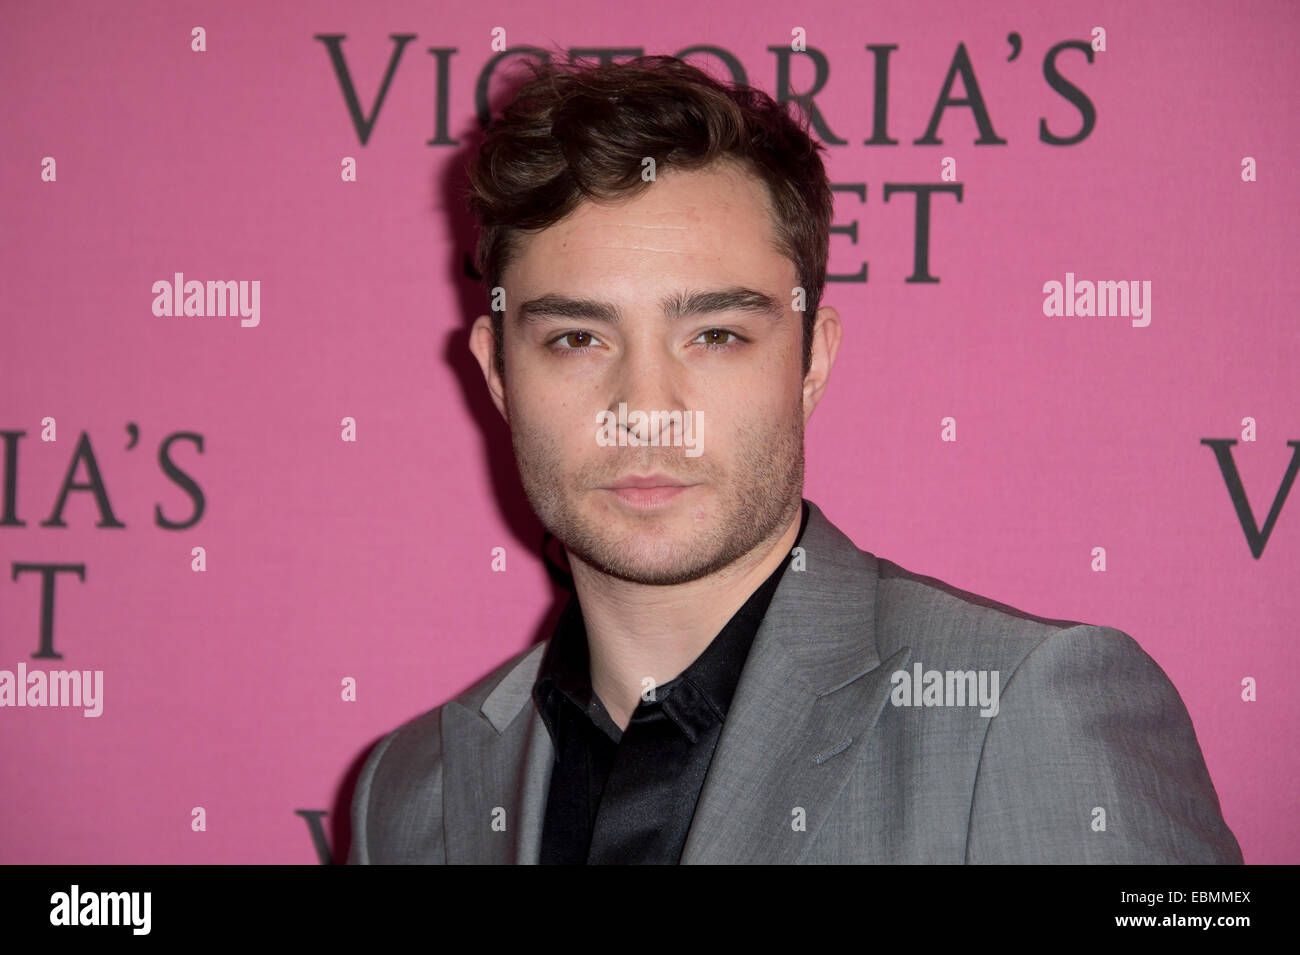 Ed Westwick at the Victoria's Secret fashion show in London. - Stock Image